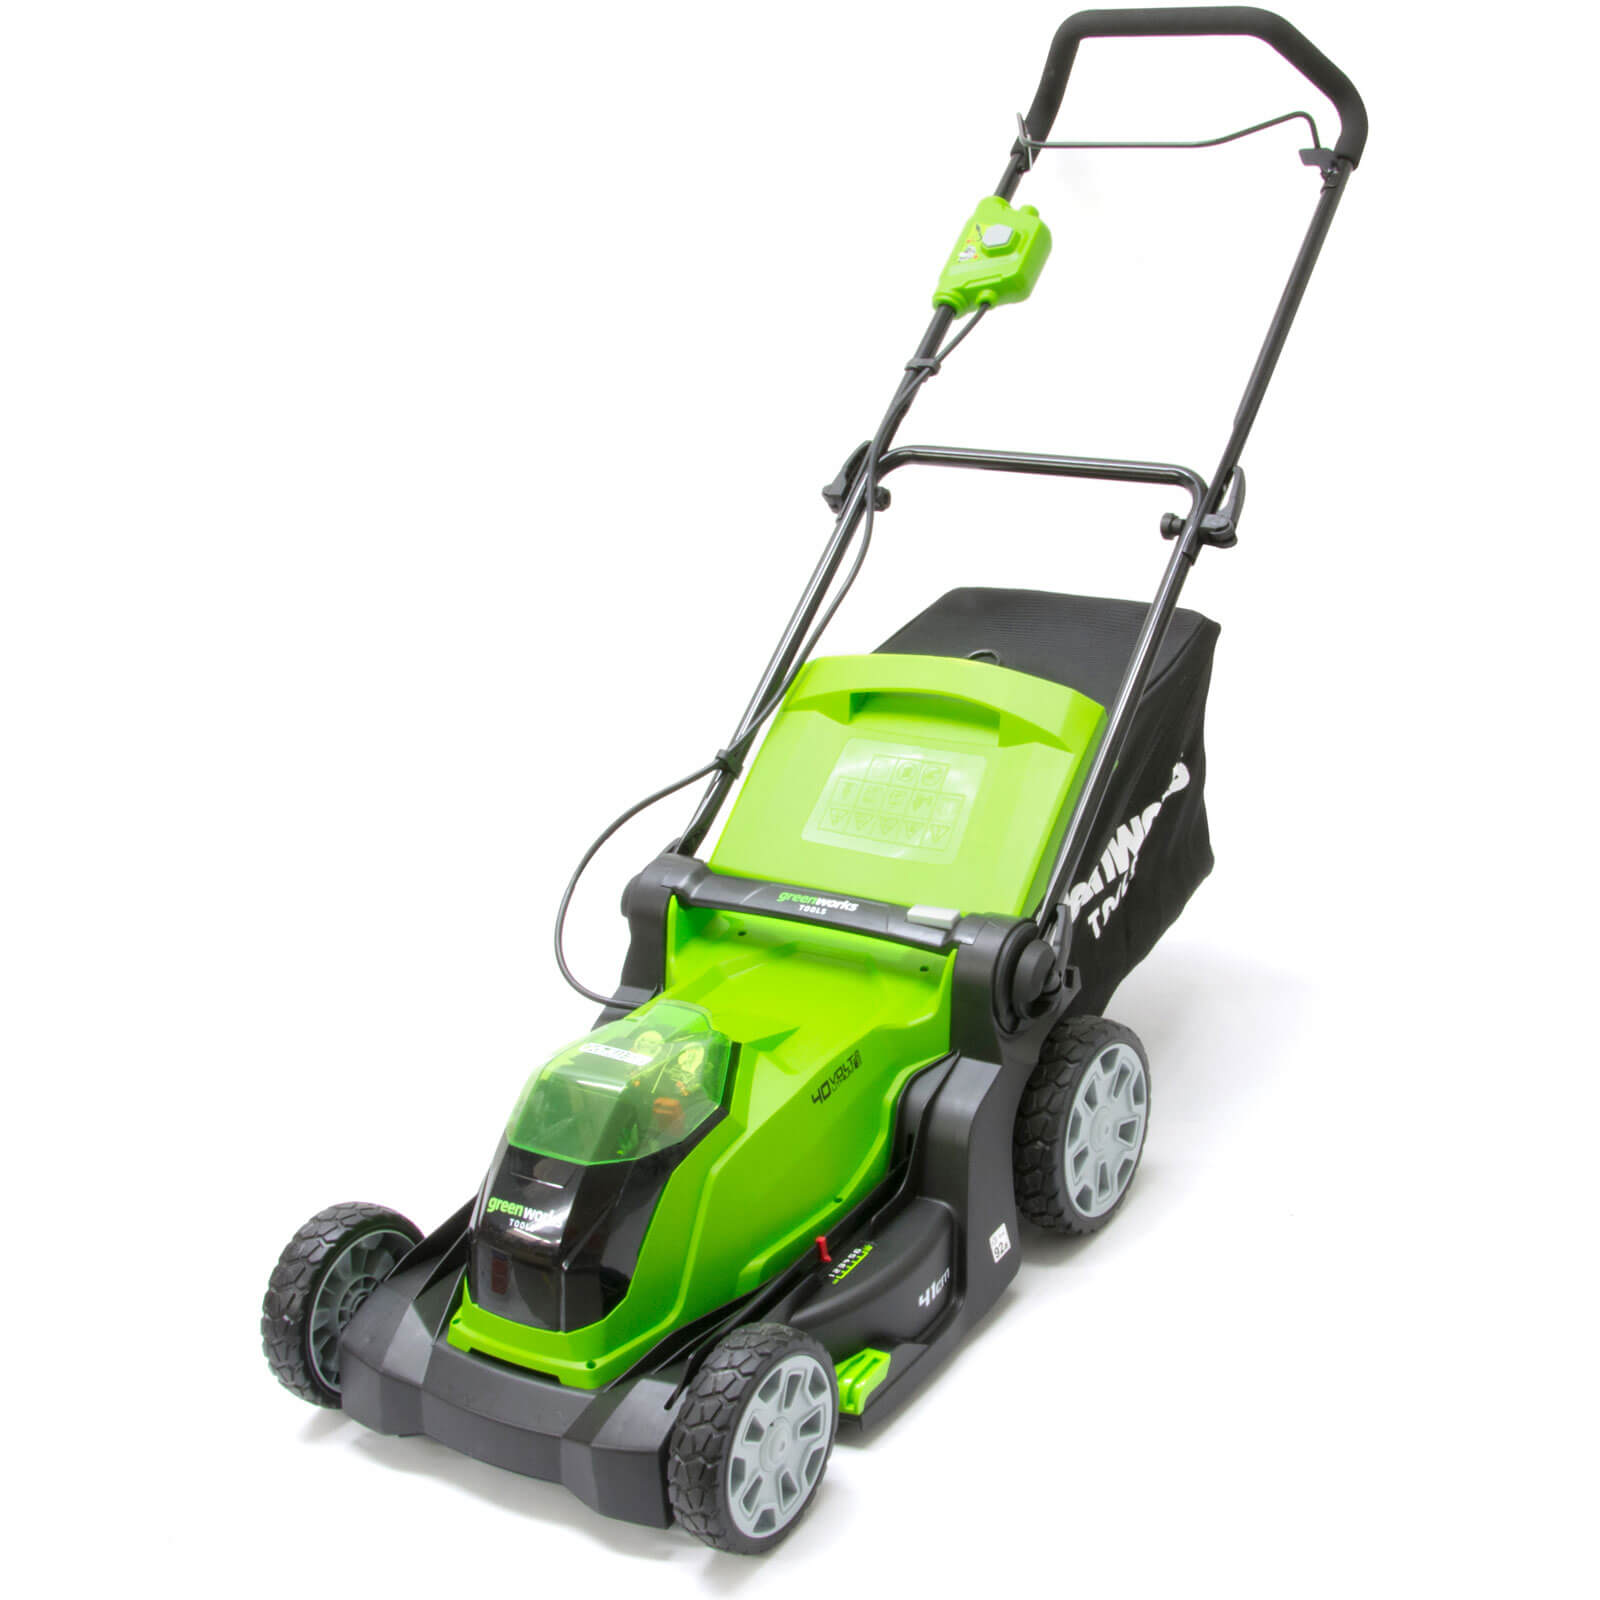 Image of Greenworks G40LM41 40v Cordless Rotary Lawnmower 400mm No Batteries No Charger